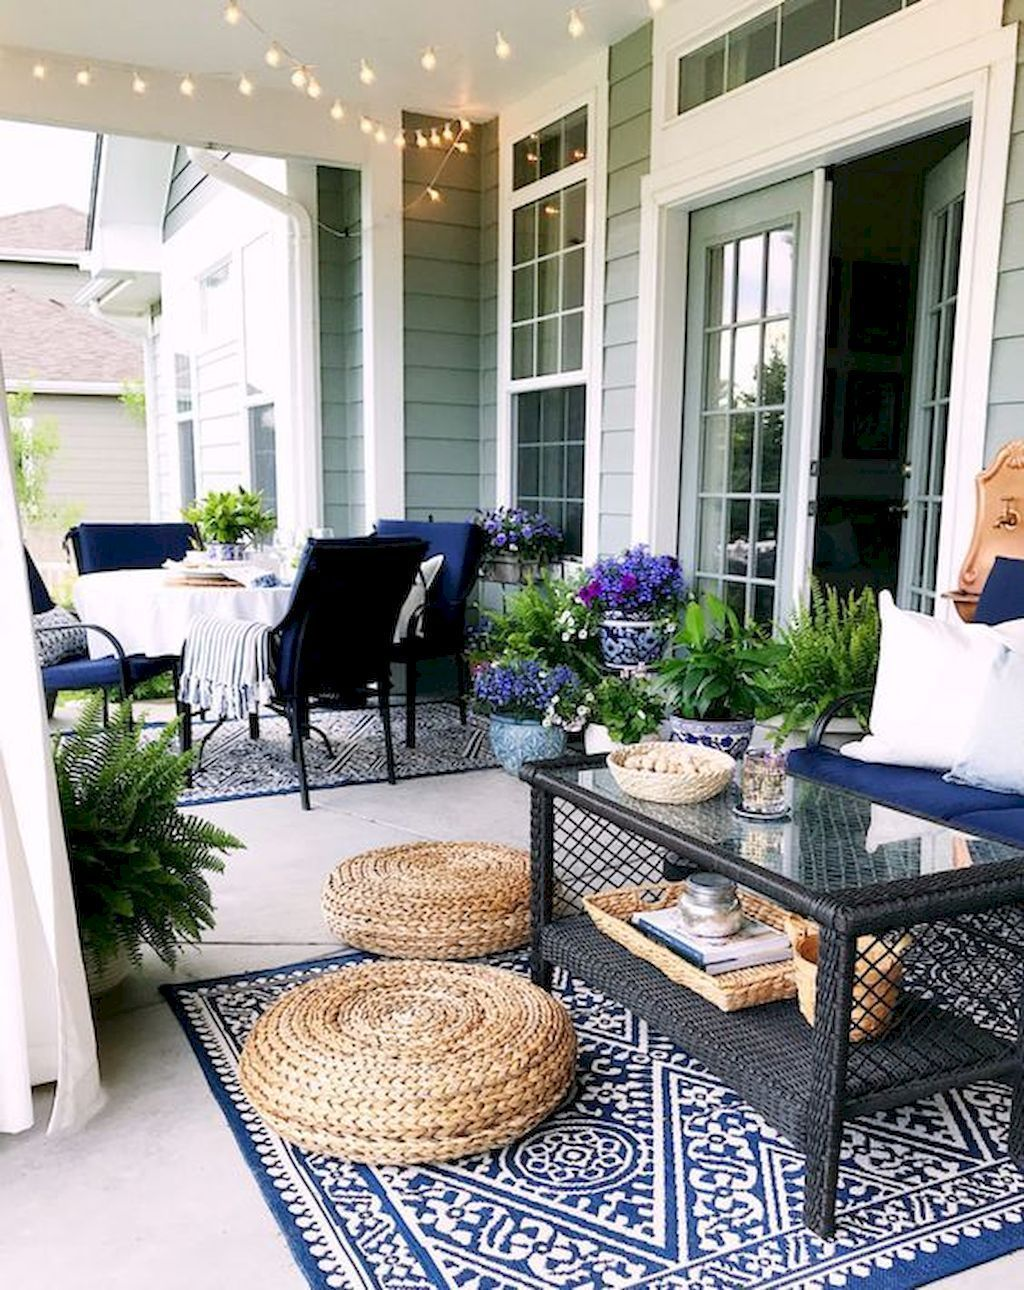 The Best Front Porch Ideas For Summer Decorating 23